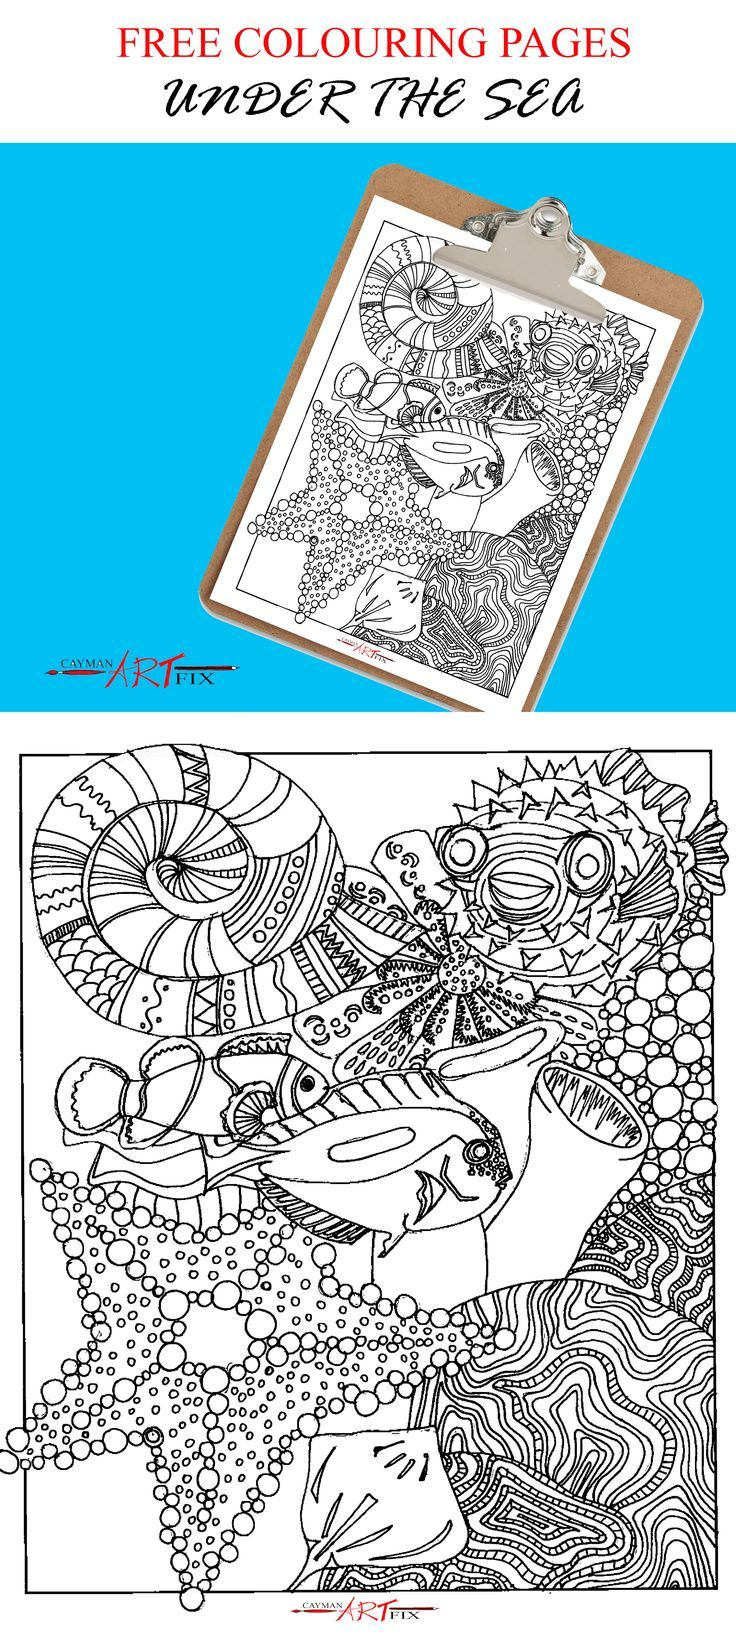 Under the Sea FREE Colouring Page | Pinterest | Adult coloring, Free ...